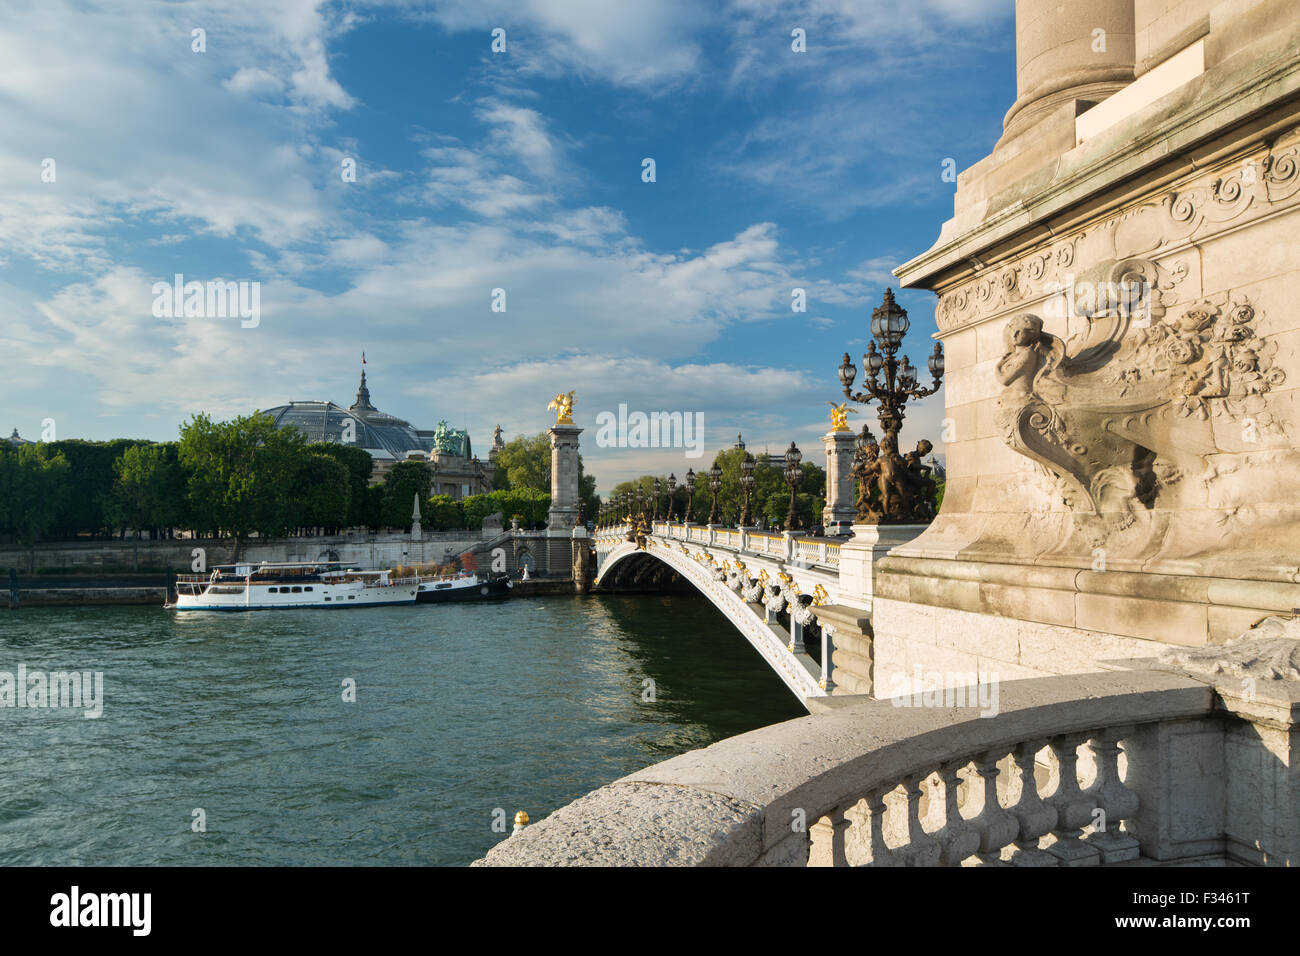 Pont Alexandre III, looking toward the Grand Palais over the River Seine, Paris, France - Stock Image